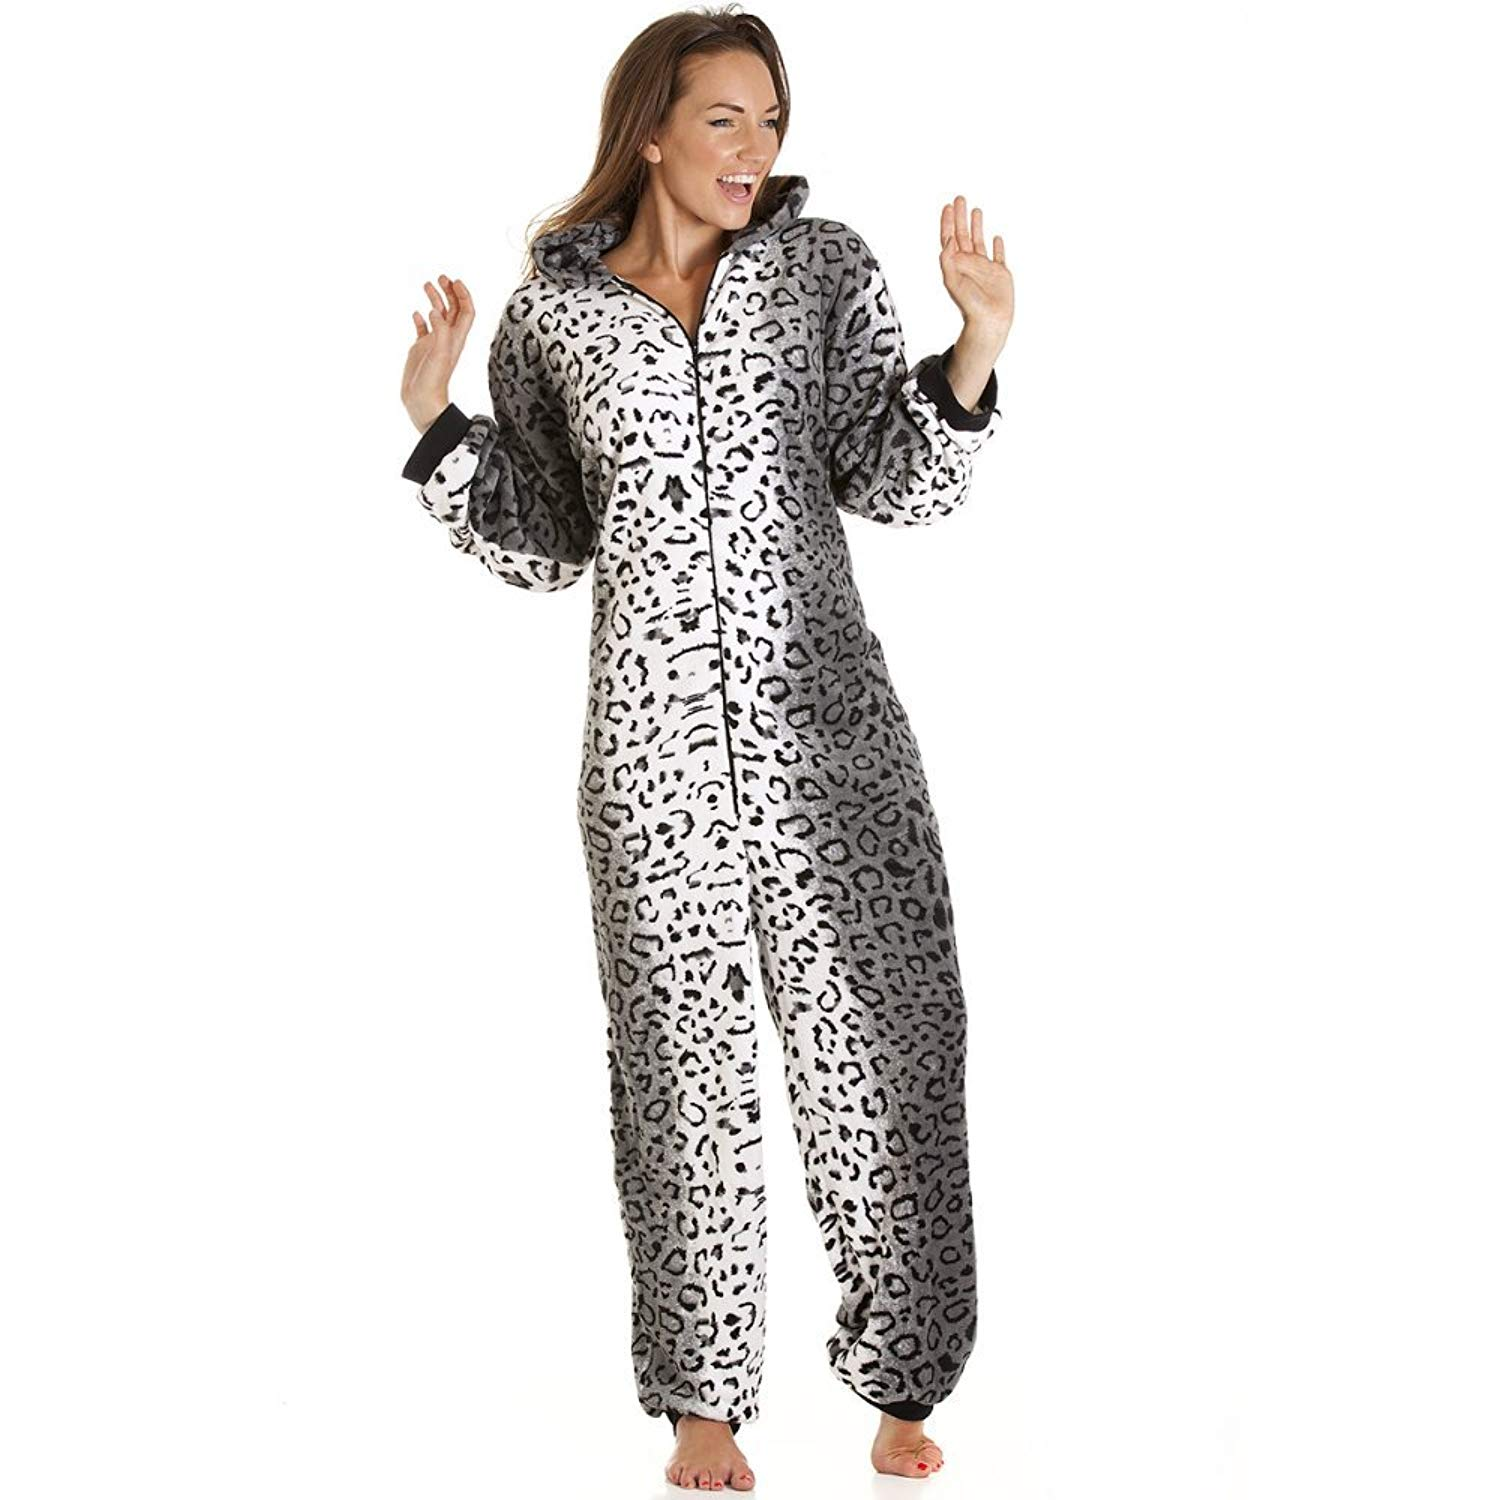 580ba960a3e2a Get Quotations · Camille Womens Ladies Supersoft Luxury Fleece Gray Snow  Leopard Onesie